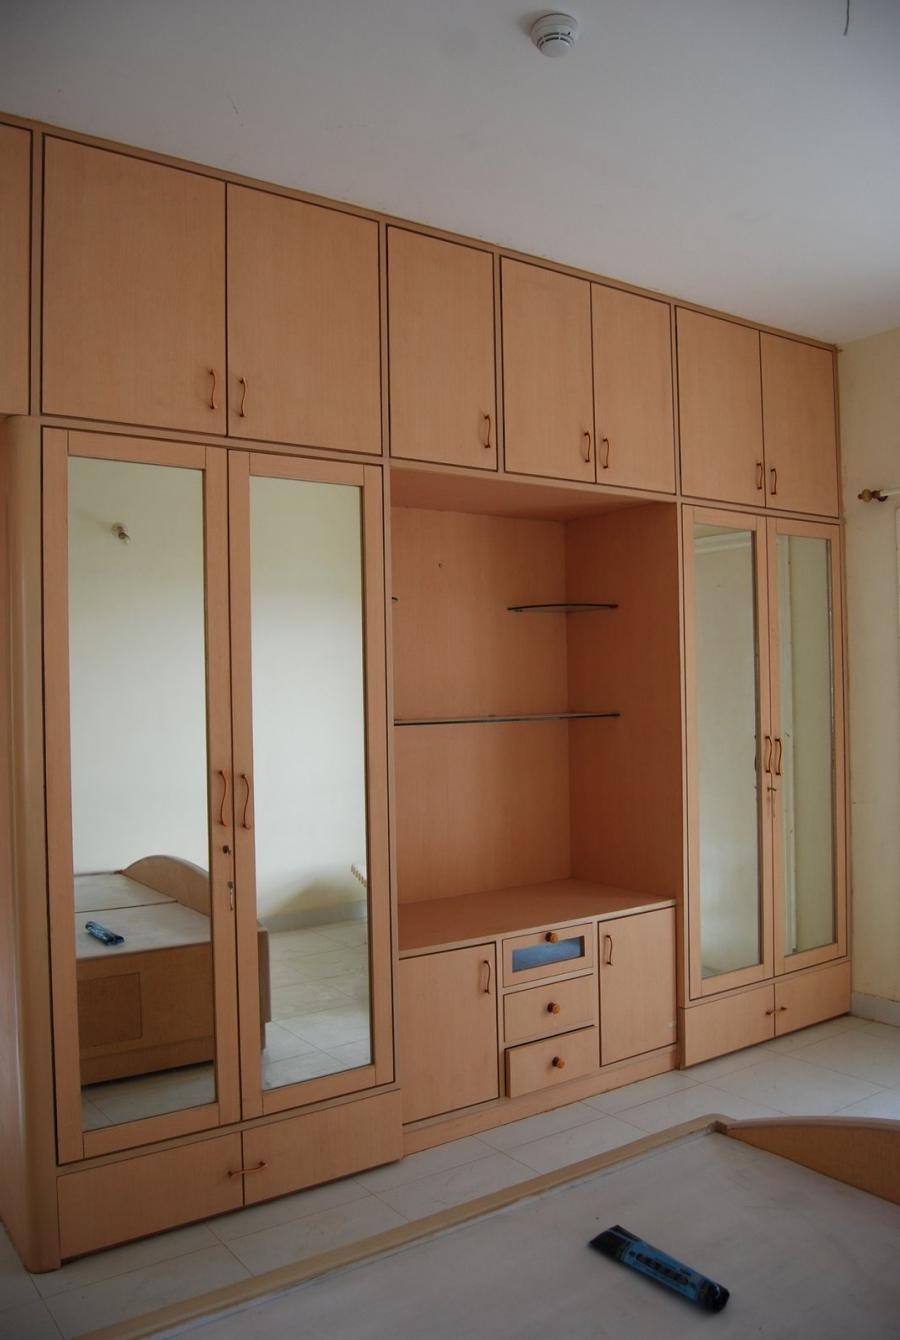 Interior design bedrooms cupboards photos for Bedroom cabinet designs india